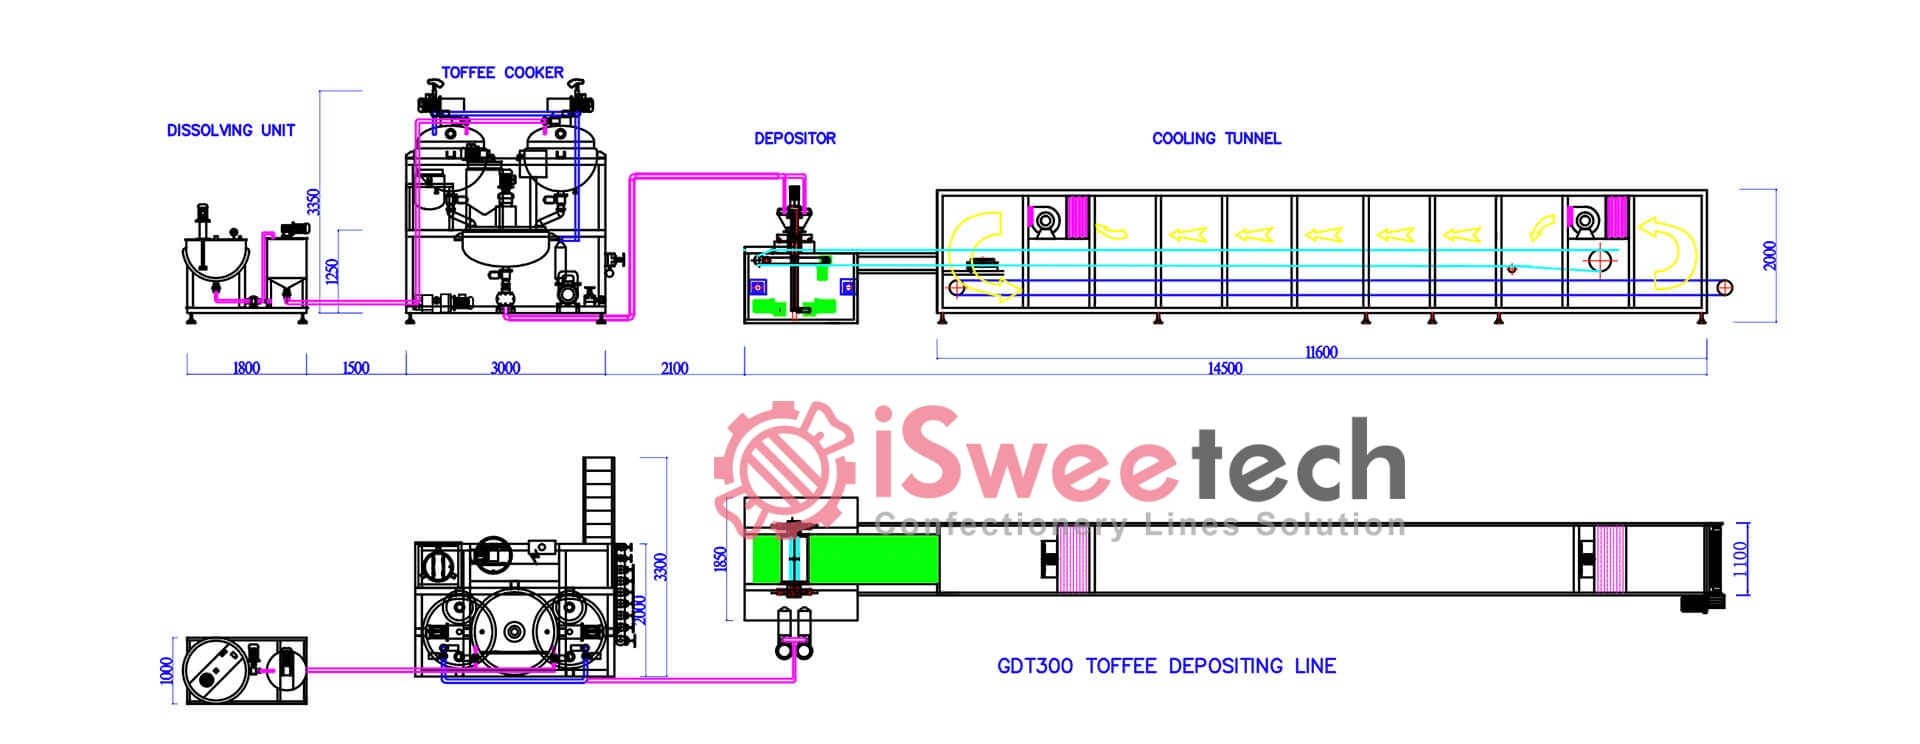 GDT300 Deposited Toffee Production Line